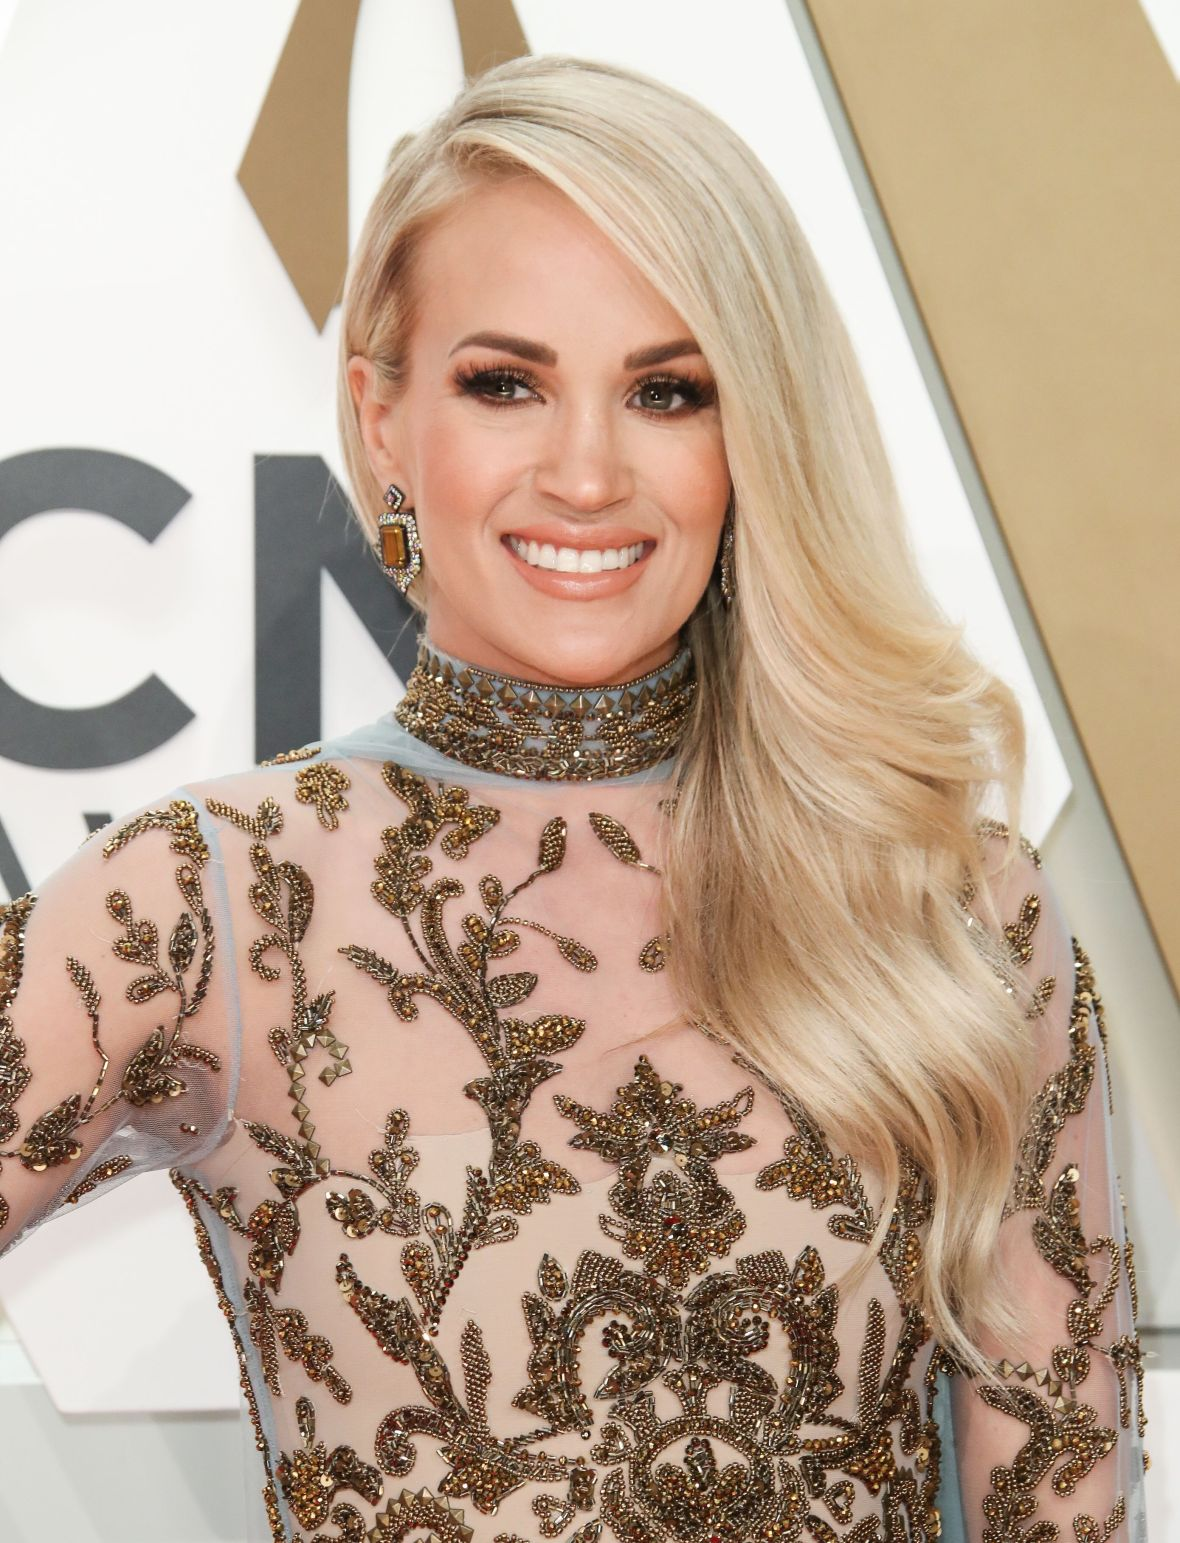 Carrie Underwood at the CMAs 2019 Red Carpet